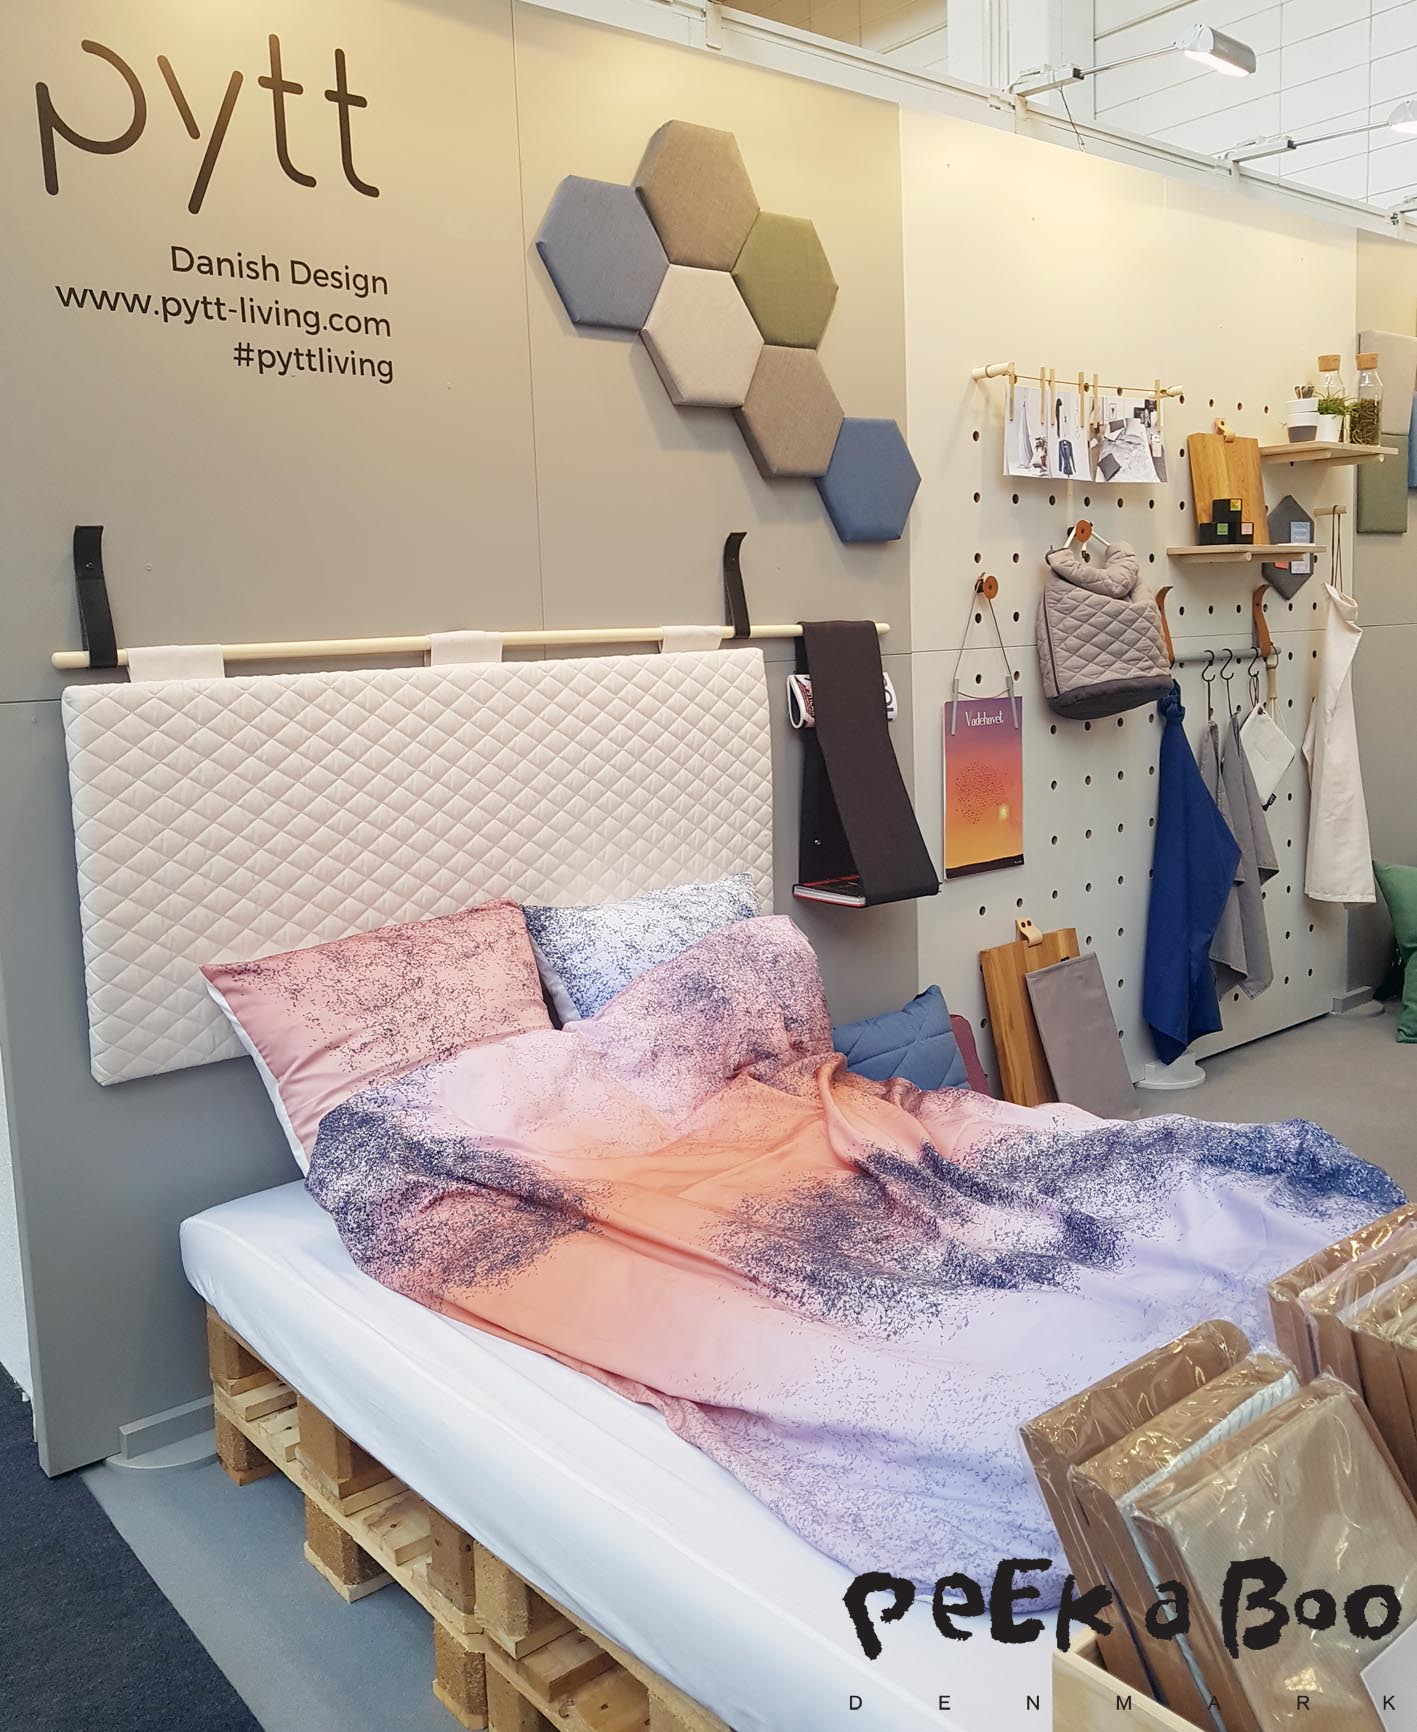 They have also made headboard for your bed and bedlinen in the softest material the motif is cut so that none of them will become alike.